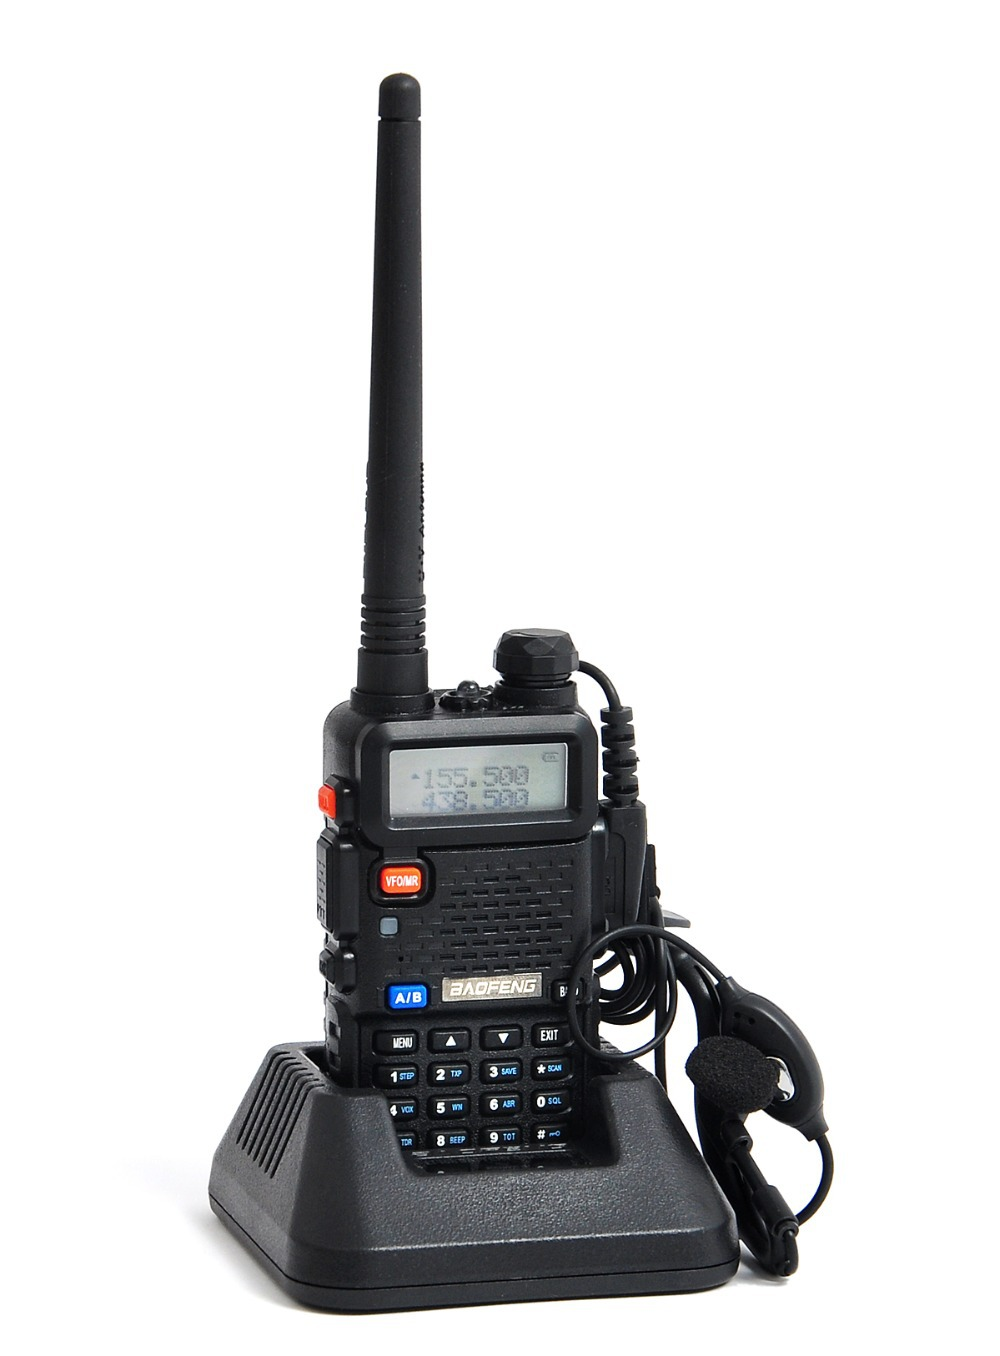 New BaoFeng UV-5R Portable Radio UV 5R Walkie Talkie 5W Dual Band VHF&UHF 136-174Mhz & 400-520Mhz Two Way Radio UV5R A0850A(China (Mainland))